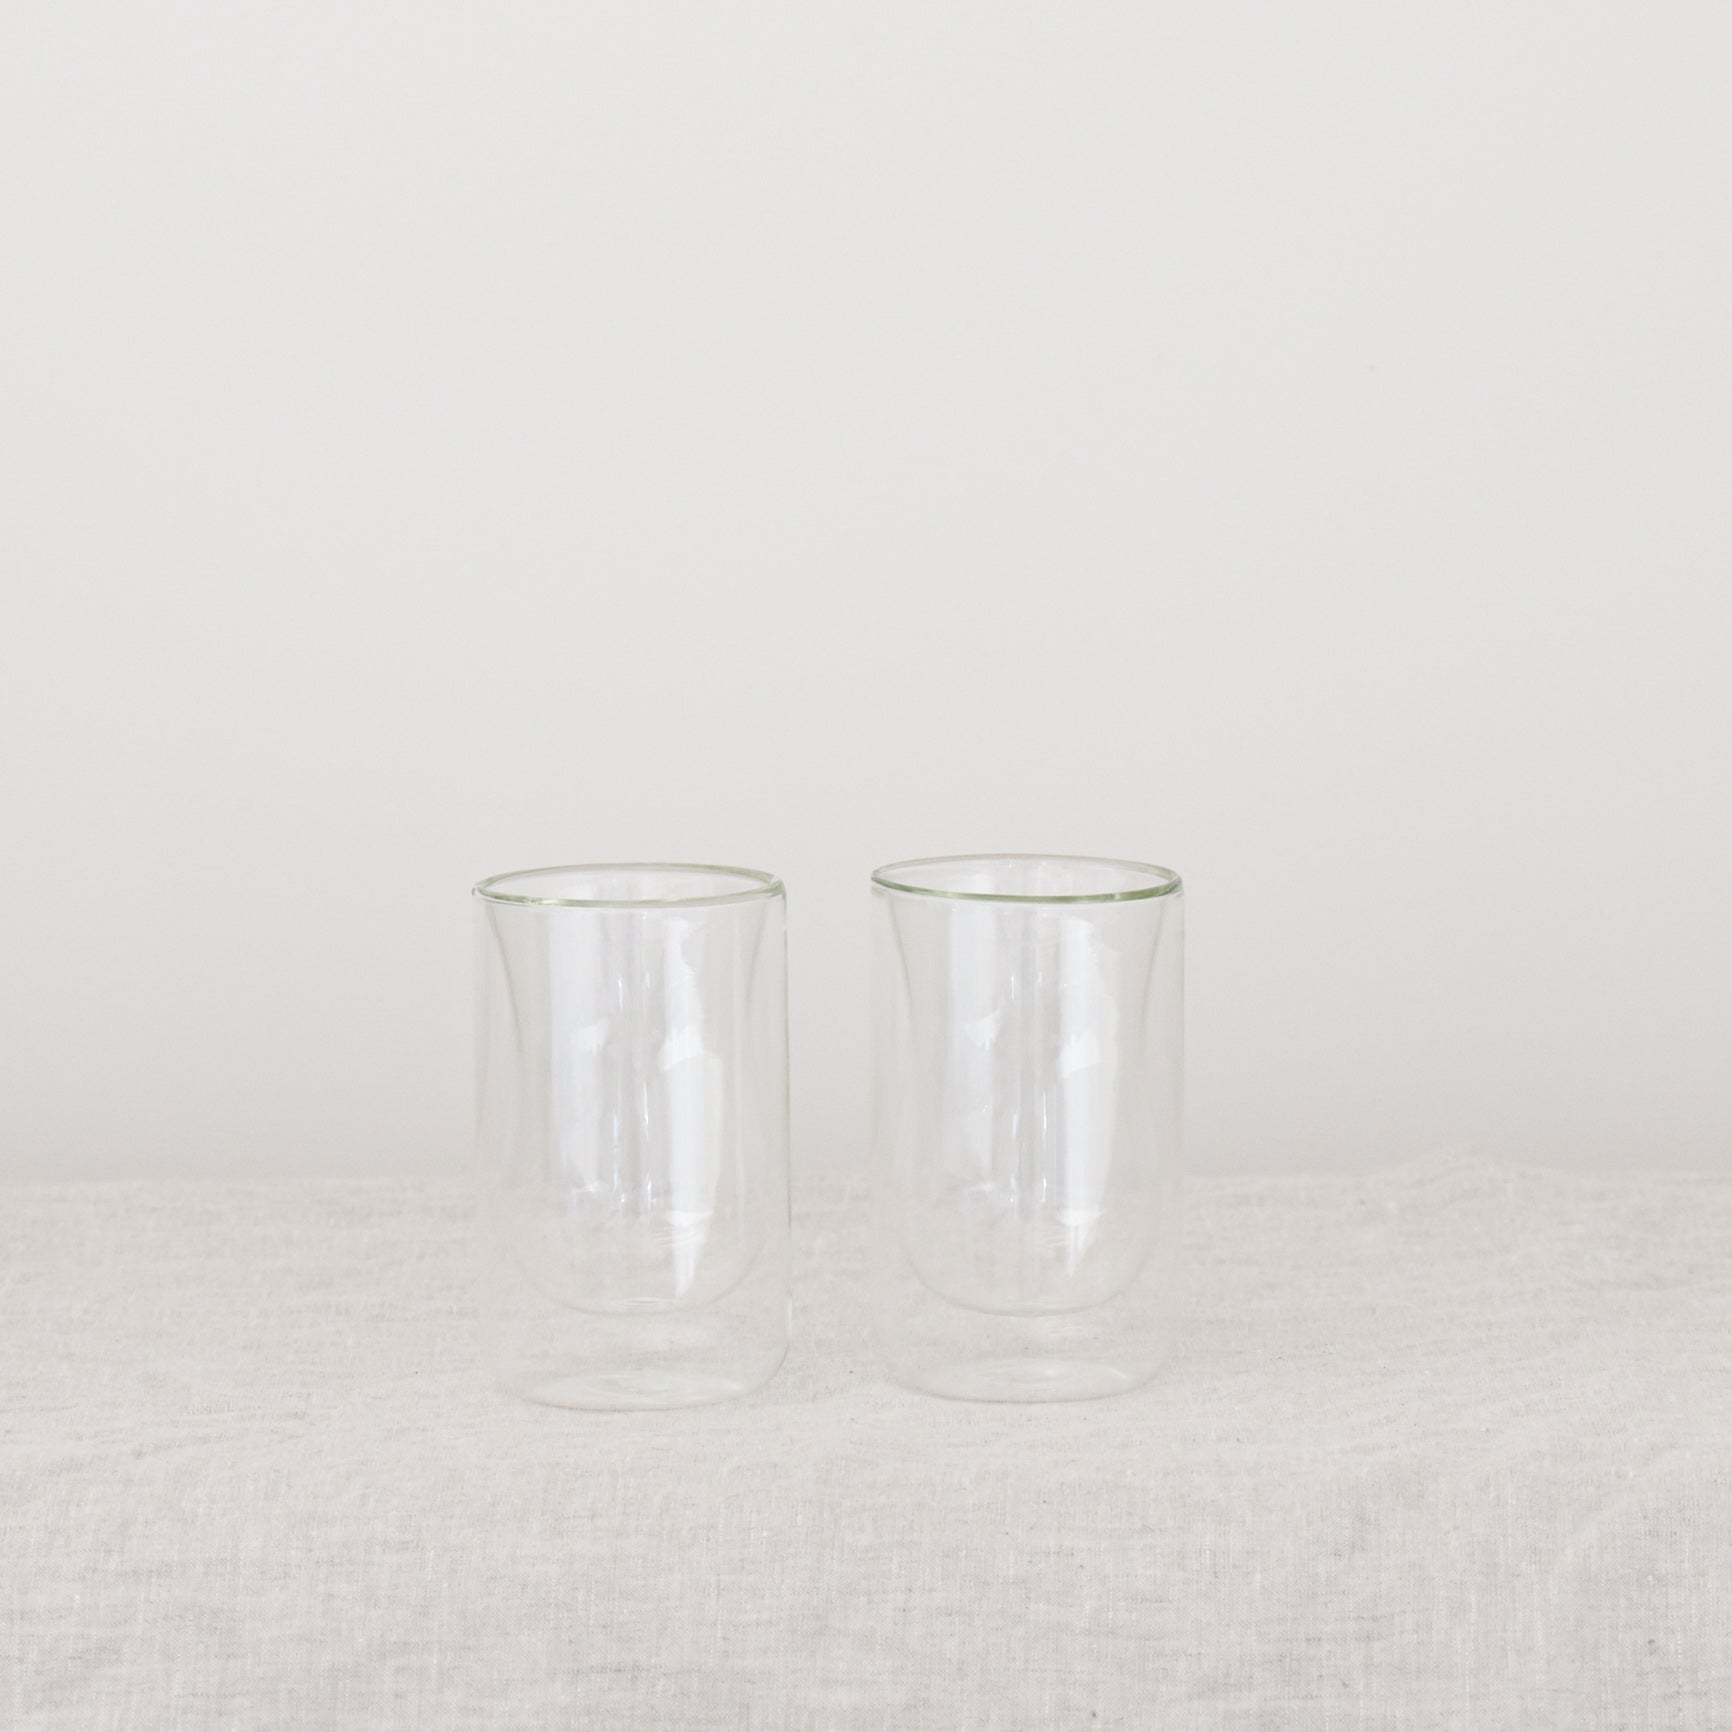 ISTANBUL Drinking Glasses | Set of 2 Double Walled Glass Cups